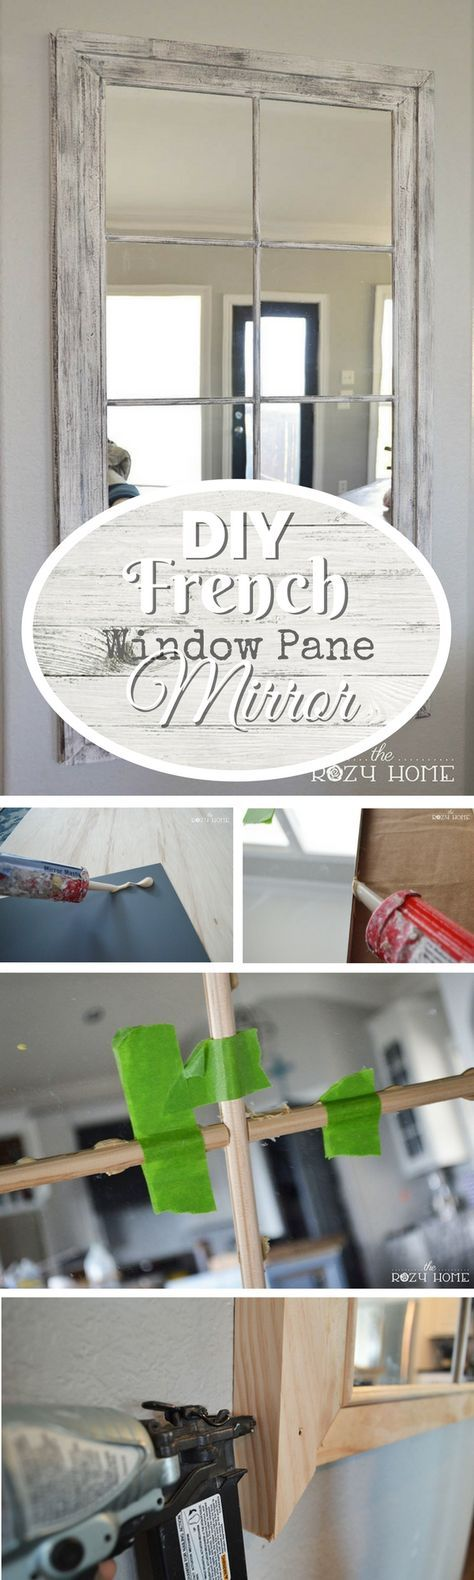 Check out how to make this DIY French window pane mirror @istandarddesign